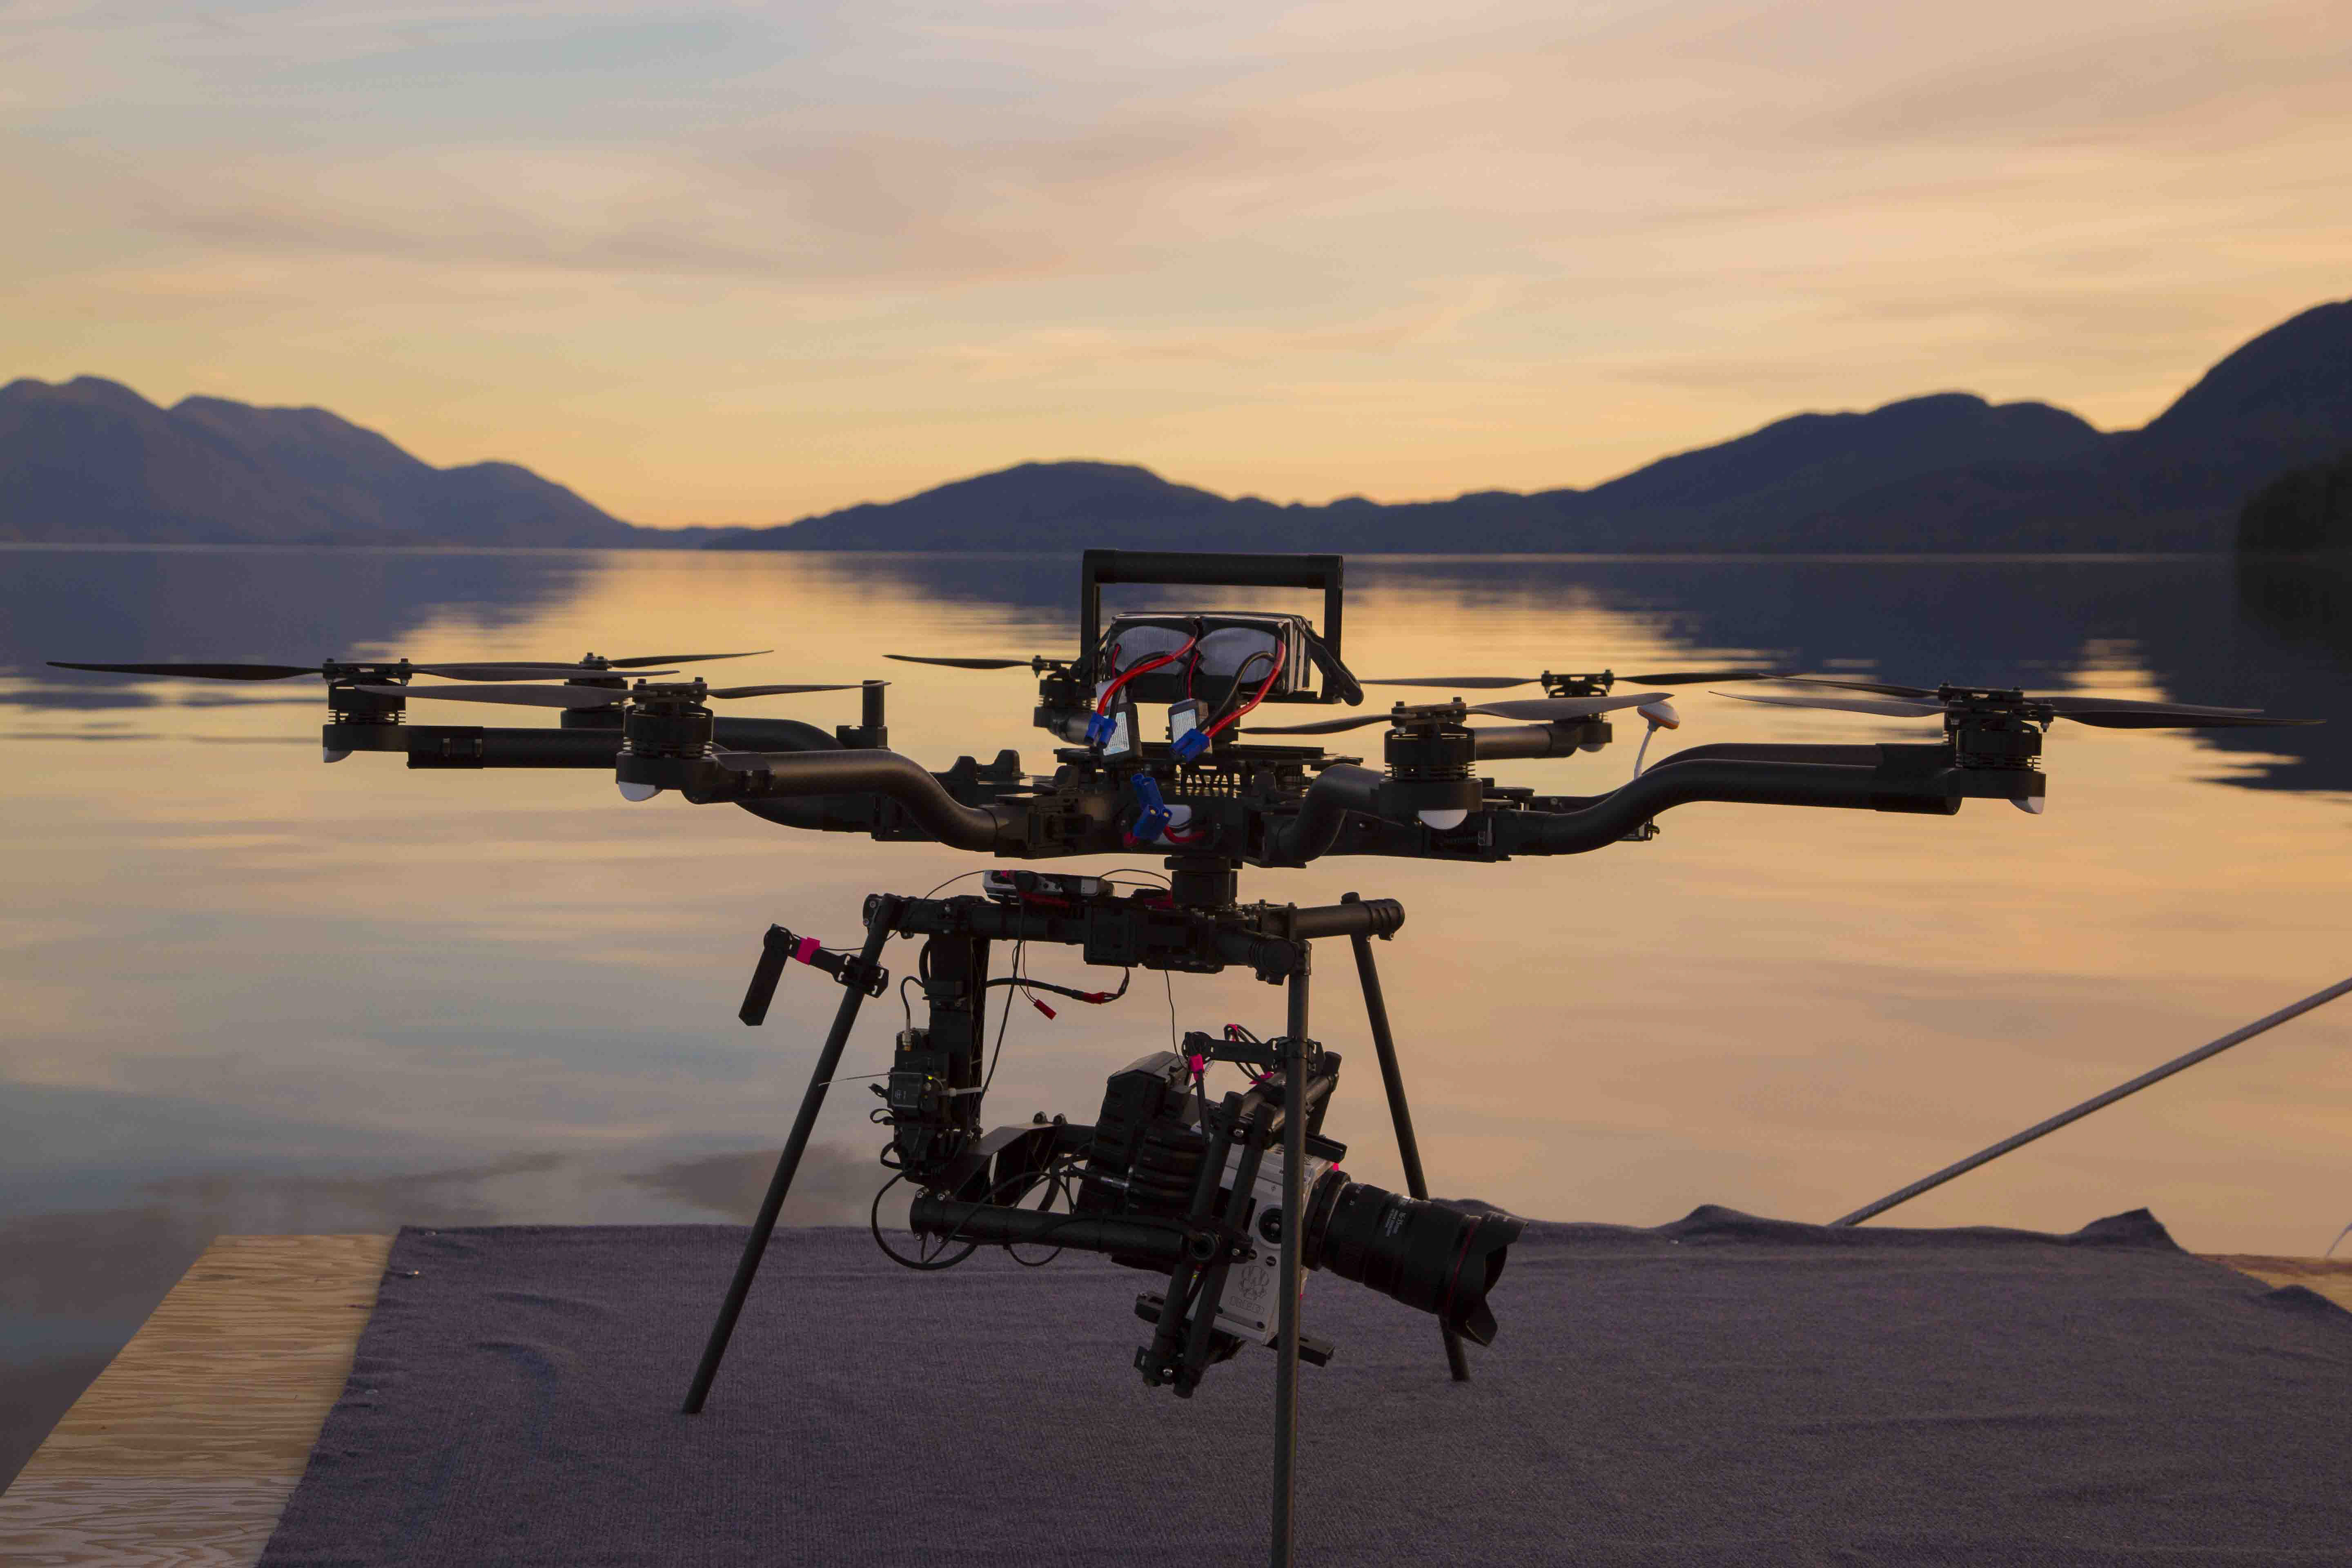 IMAX Production: Chief Drone Pilot   Aerial Vista Productions